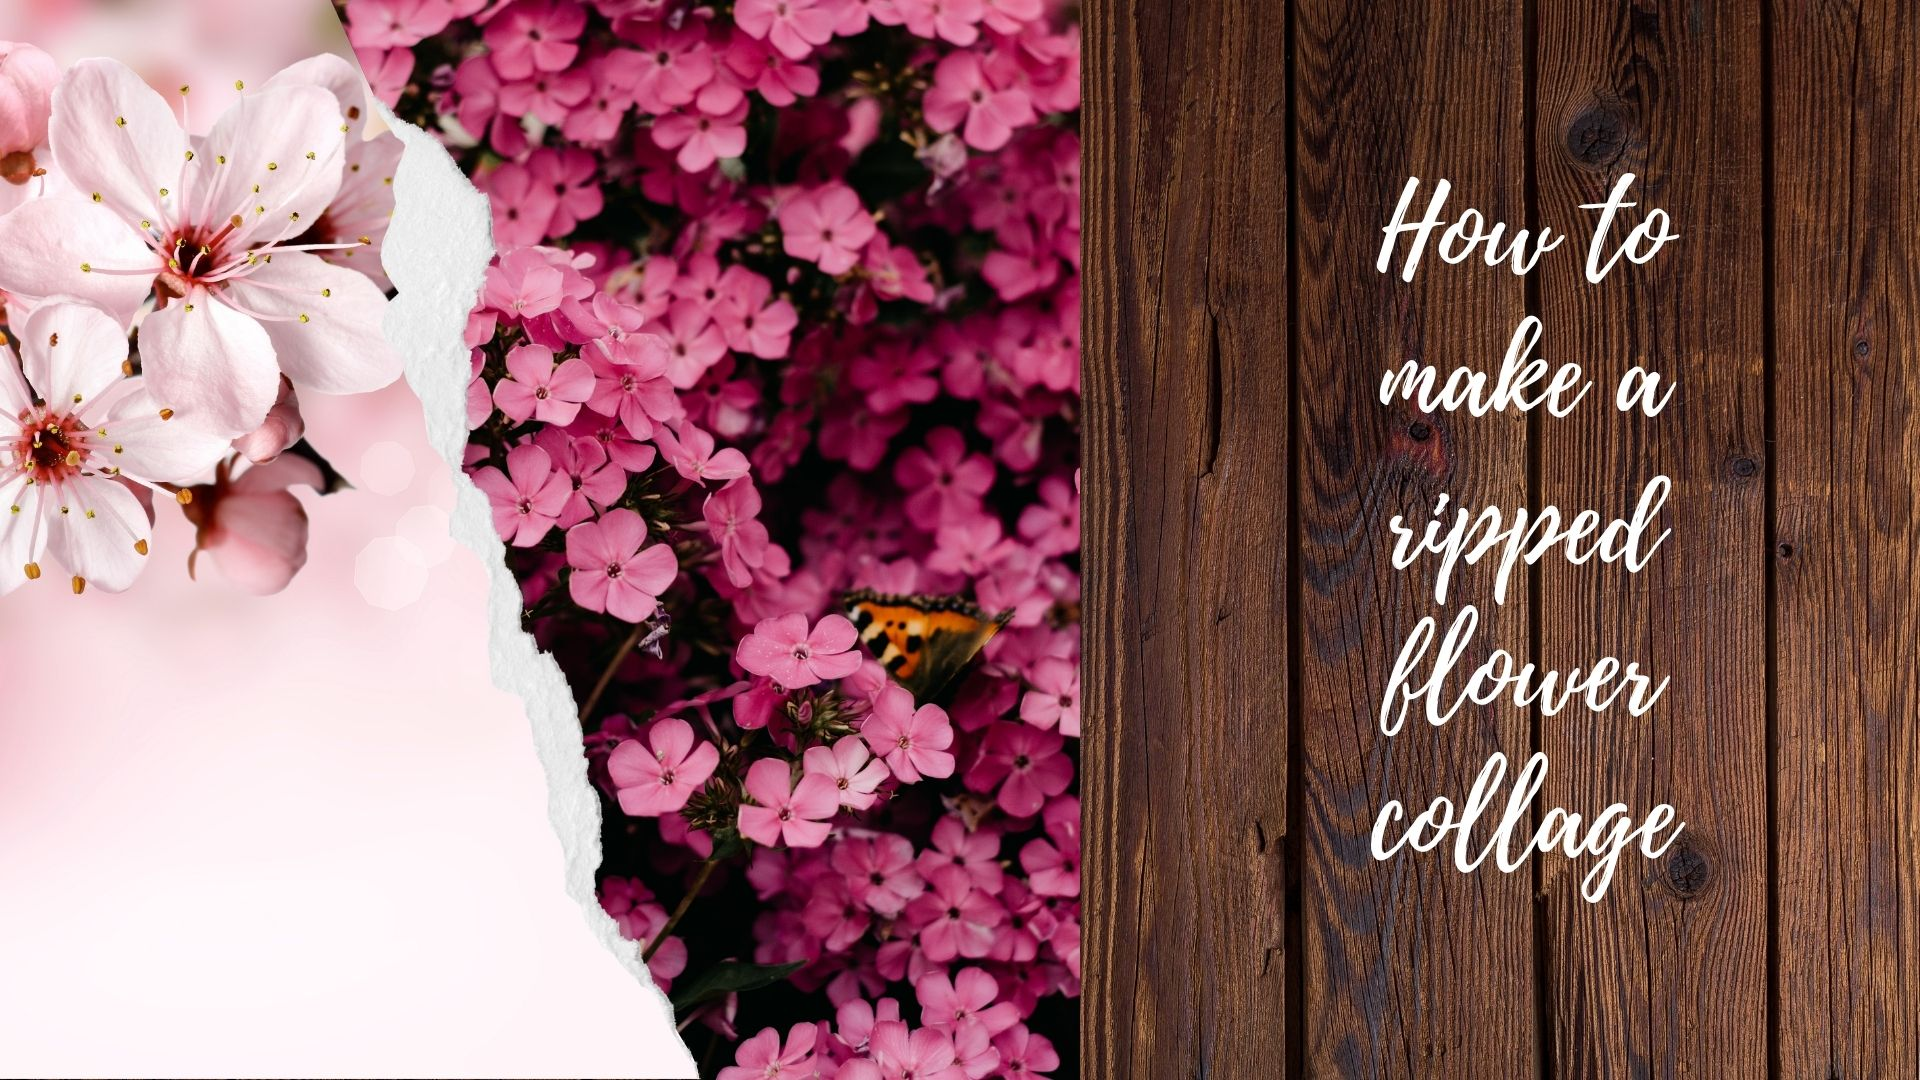 How to Make a Ripped Flower Collage